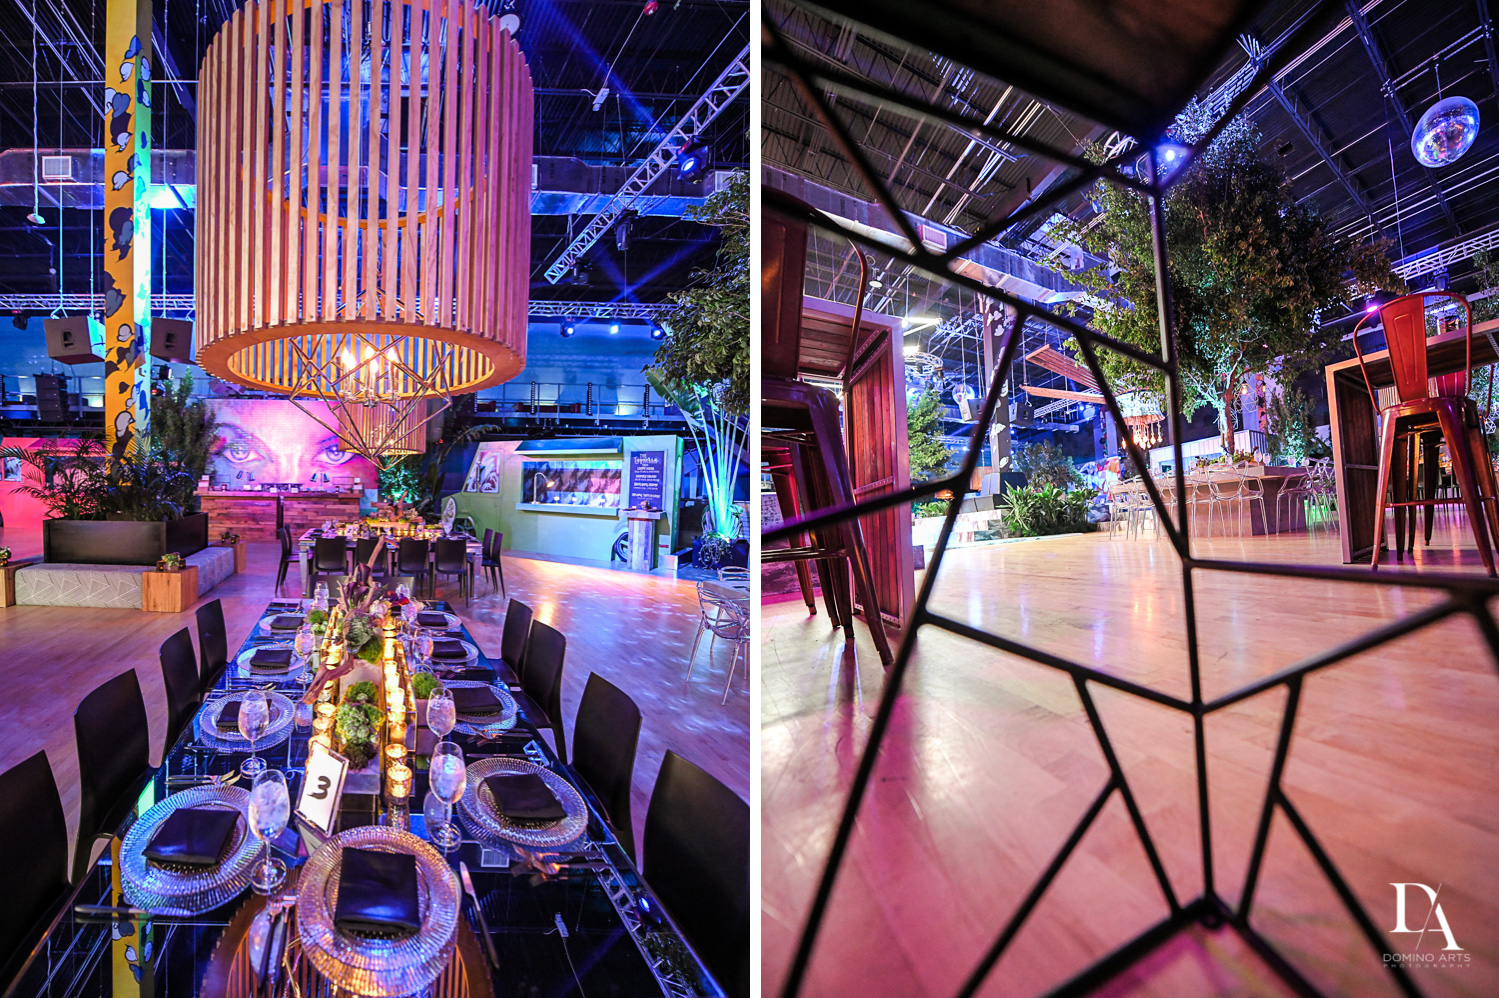 beautiful colorful decor at Urban Graffiti BNai Mitzvah with celebrity Shaq at Xtreme Action Park by Domino Arts Photography